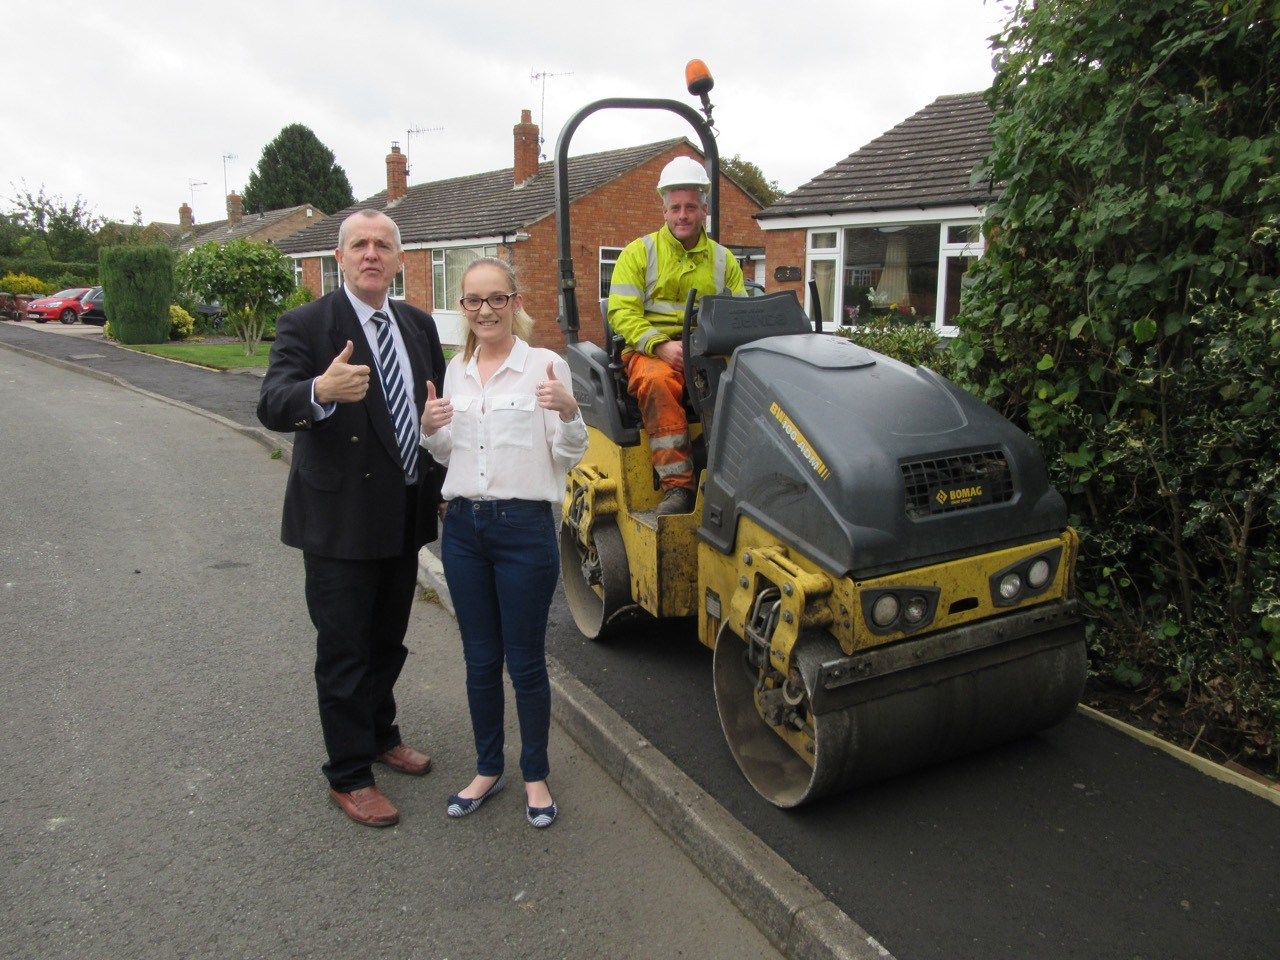 Cllr Phil Grove and Jessica Smith with a member of the highways team